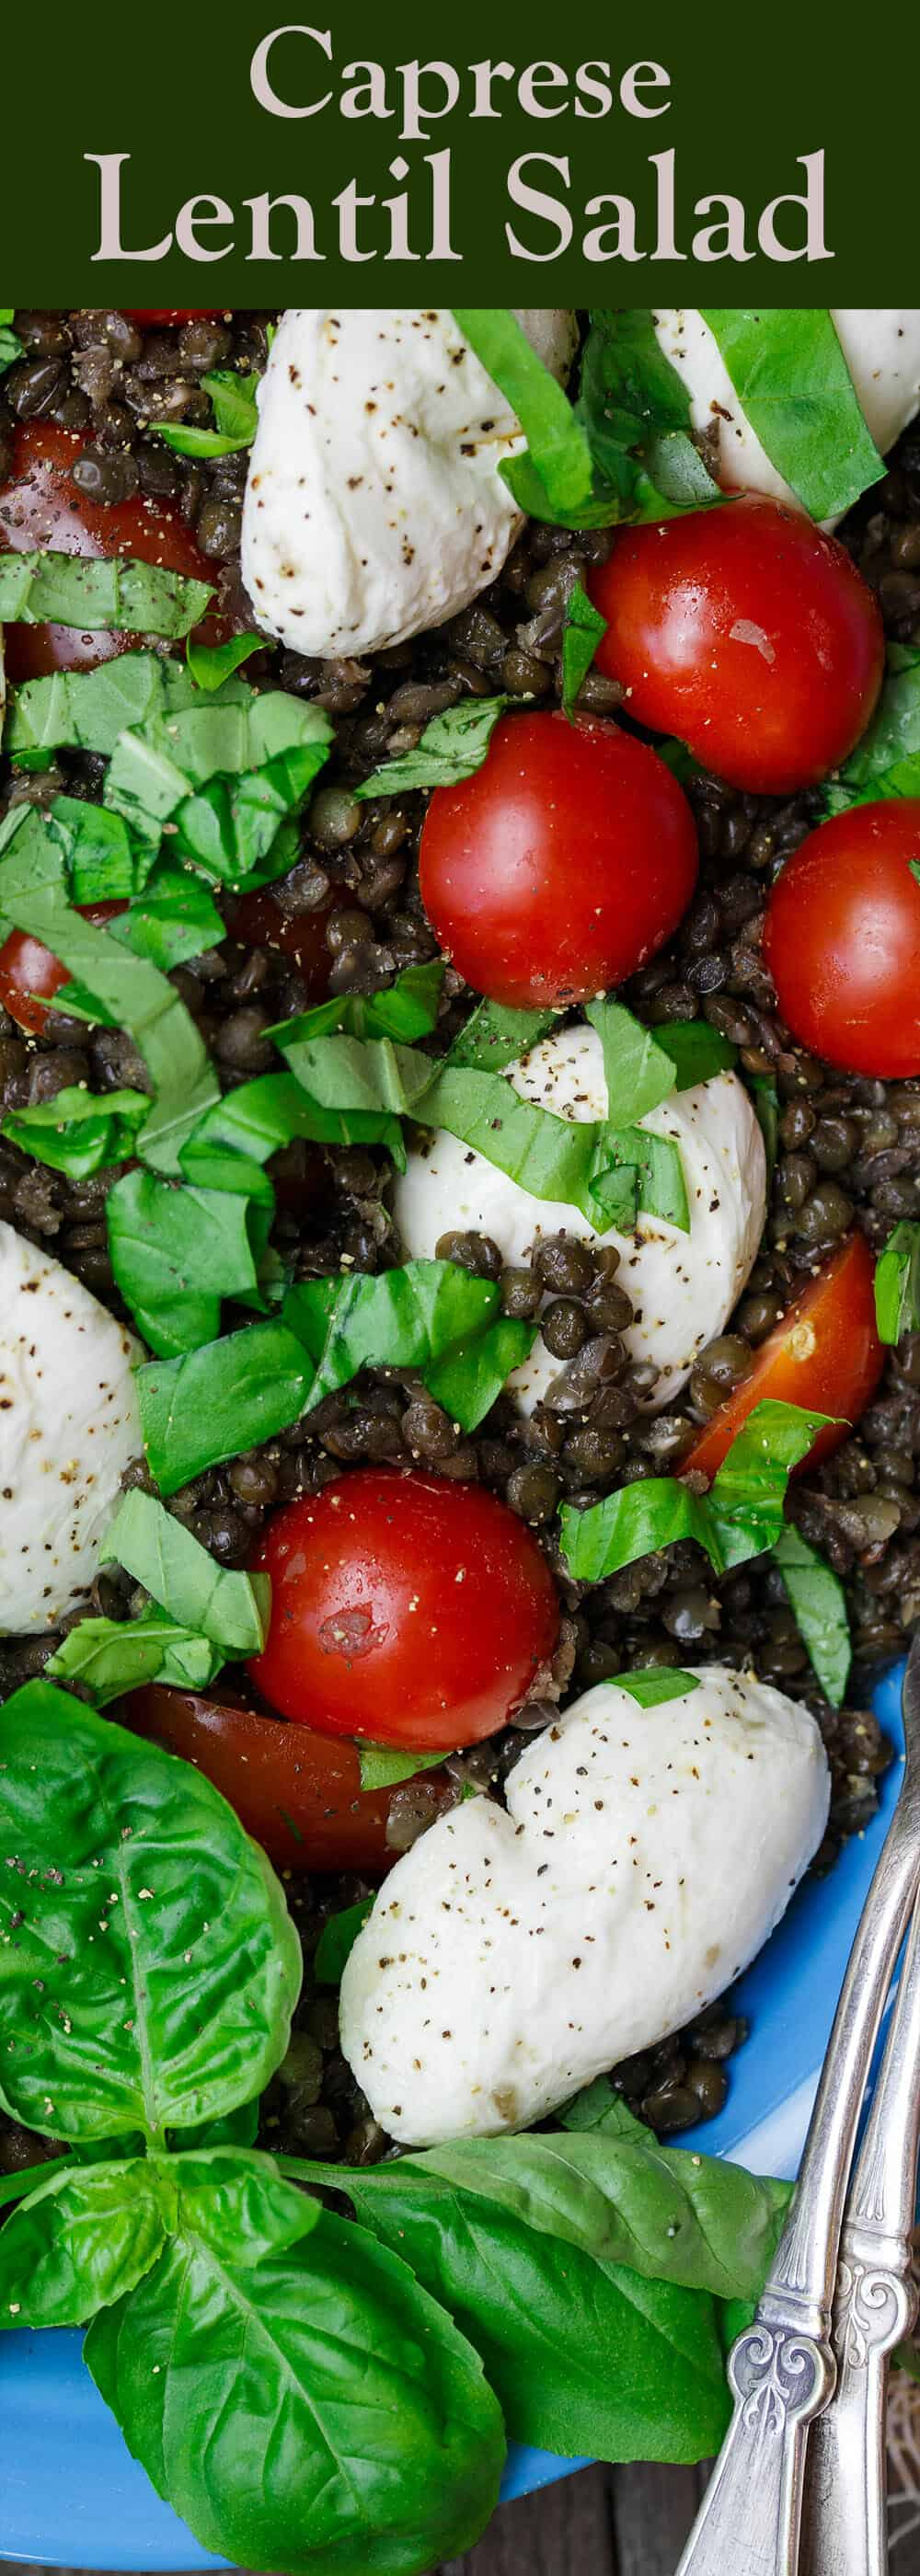 Caprese Lentil Salad Recipe   The Mediterranean Dish. A satisfying, hearty caprese salad on top of a bed of creamy black lentils. This caprese lentil salad recipe is the perfect side, appetizer, or even lunch. From TheMediterranenaDish.com #capresesalad #lentilsalad #mediterraneandiet #lentils #lentilrecipe #caprese #saladrecipe #mediterraneanfood #healthyrecipes #glutenfreerecipes #vegetarianrecipes